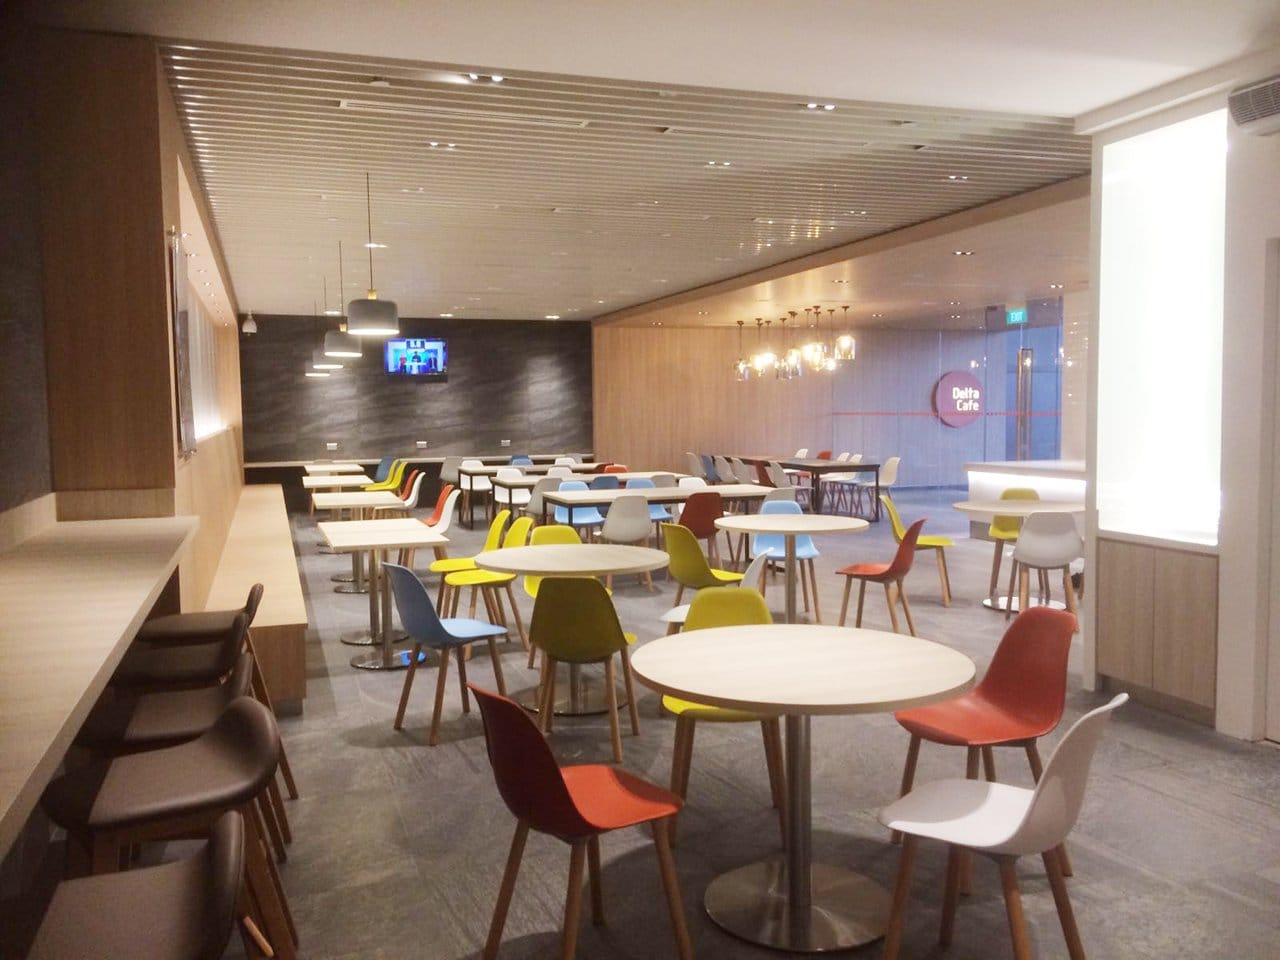 Changi Airport Group D45 Canteen for Airside | Product Seen: [Argo + Plug Chair, Jazz Barstool – SH750, Customised Laminate Tabletop + Ricky Table Leg &amp; Customised Laminate Tabletop + Traxtor Round Table Base]<br />